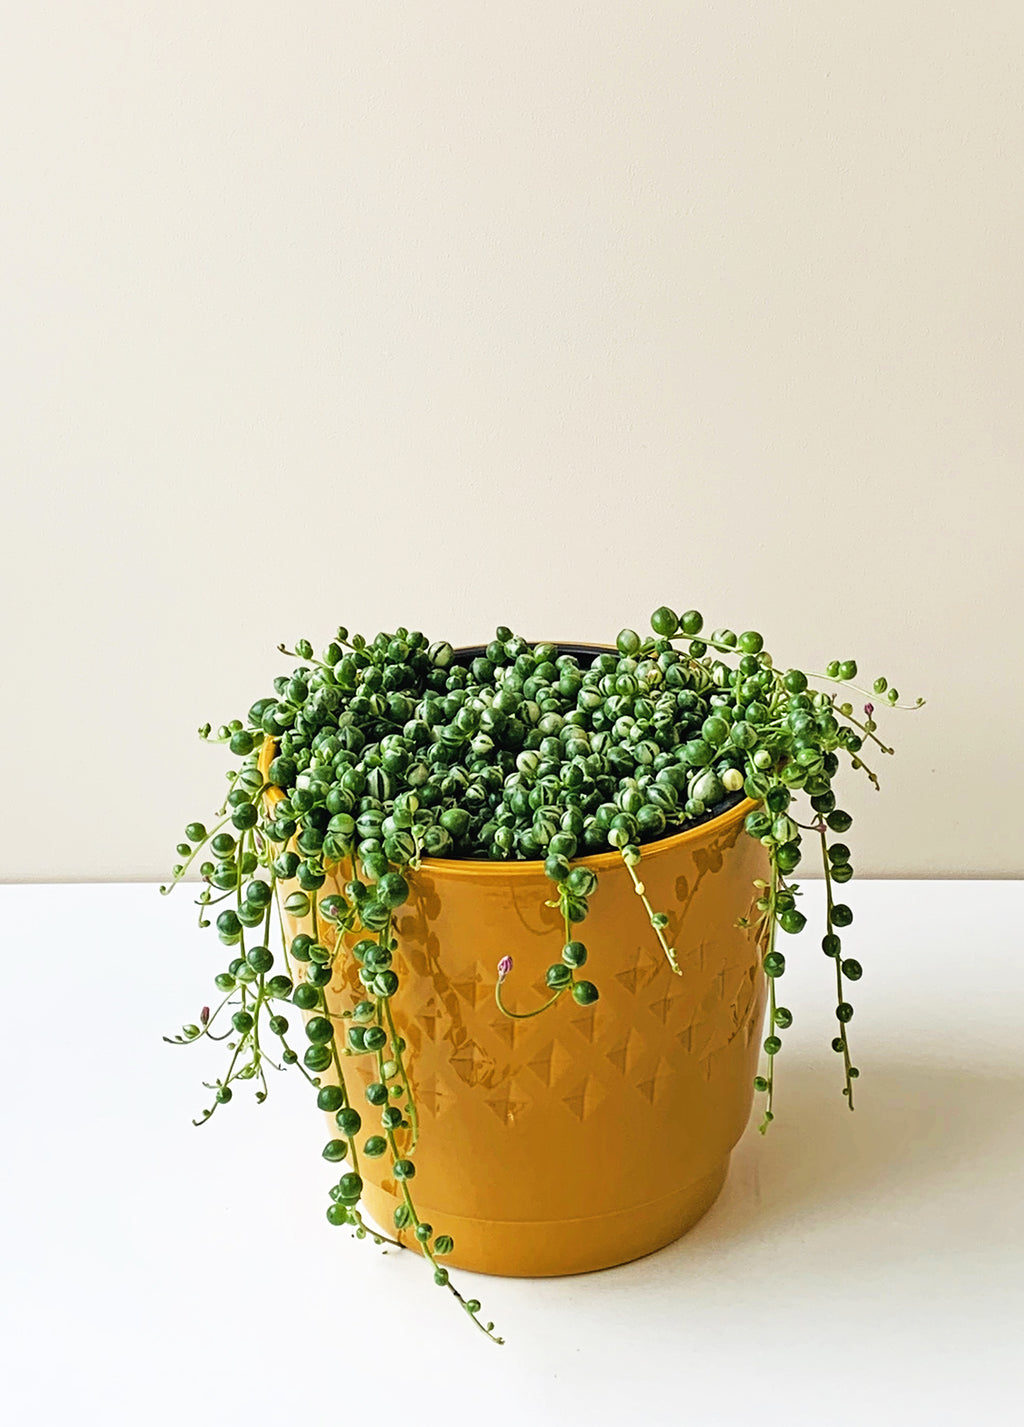 Variegated Senecio rowleyanus - Variegated String of Pearls